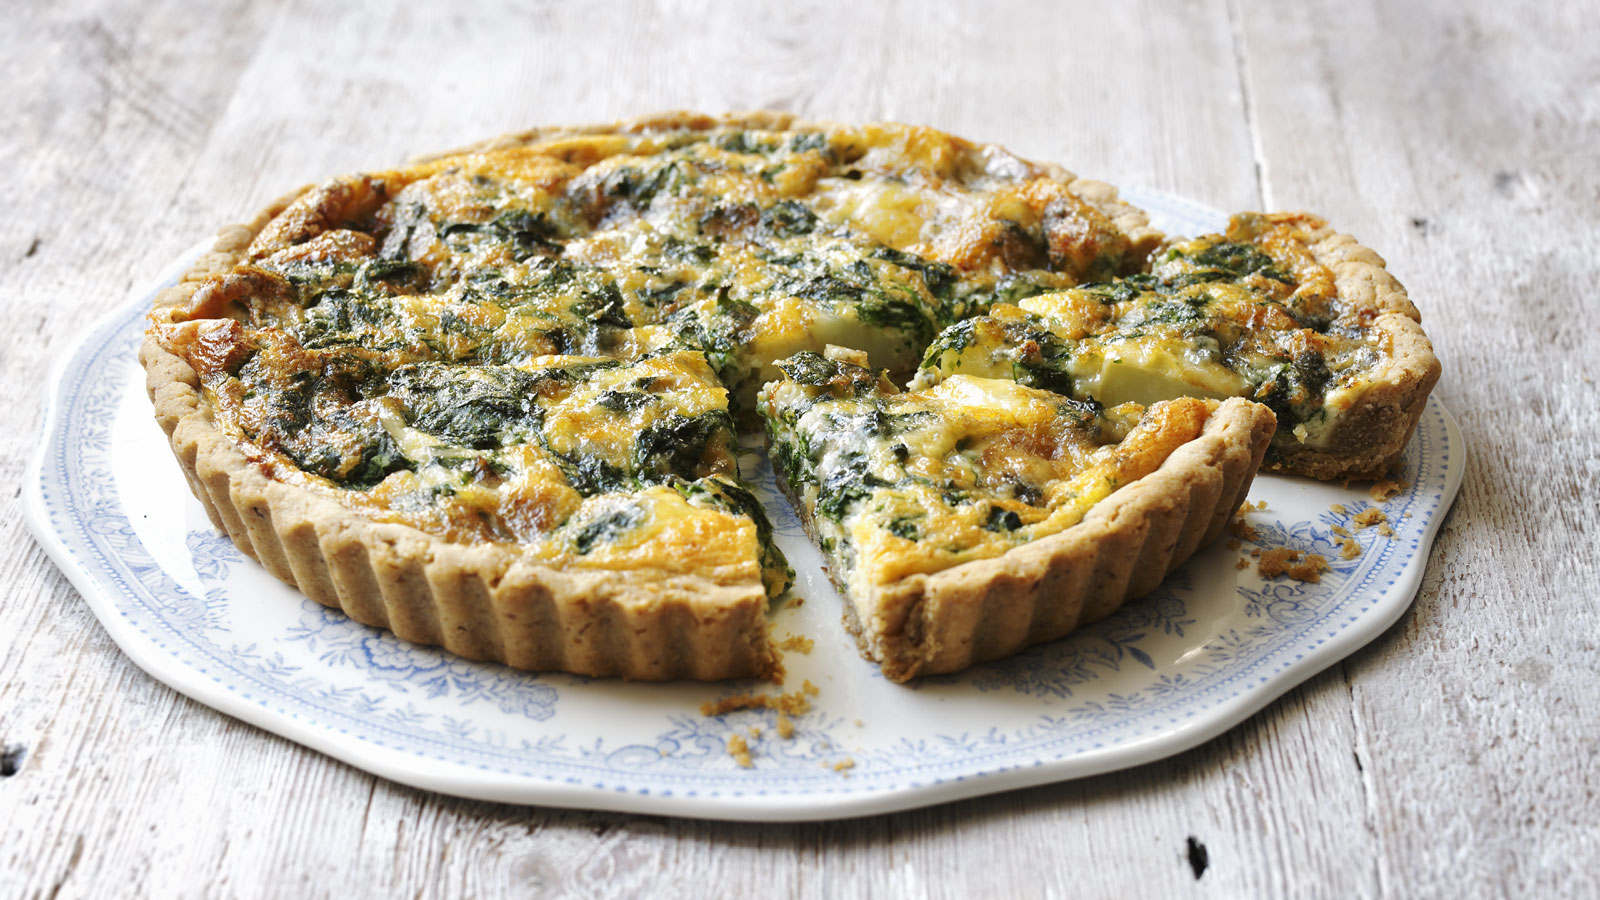 Stilton Spinach And New Potato Quiche With Walnut Pastry Recipe Bbc Food